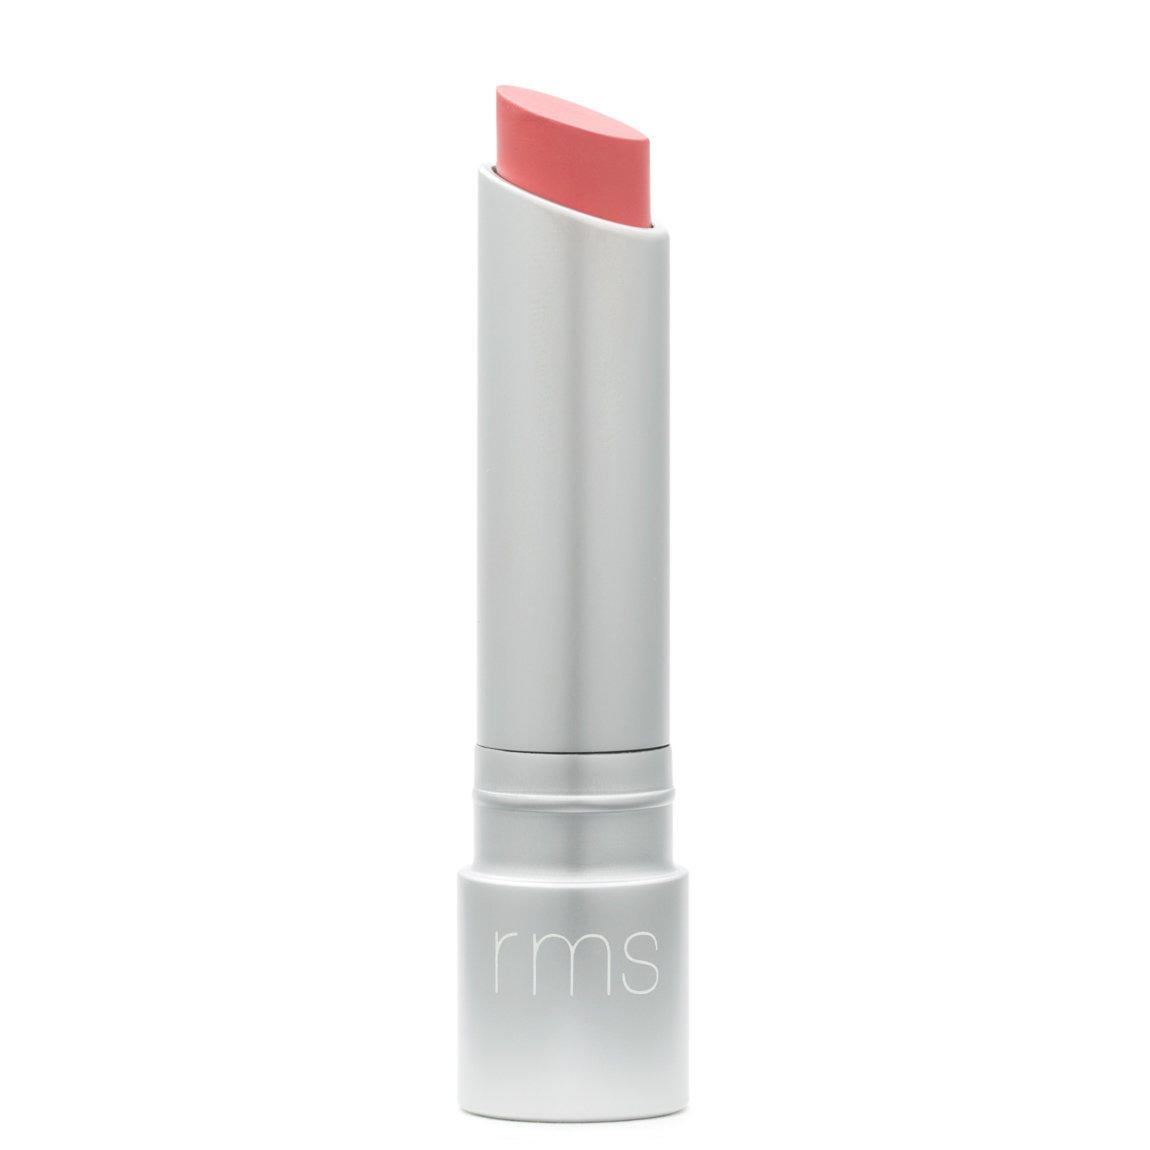 RMS Beauty Wild With Desire Lipstick Vogue Rose